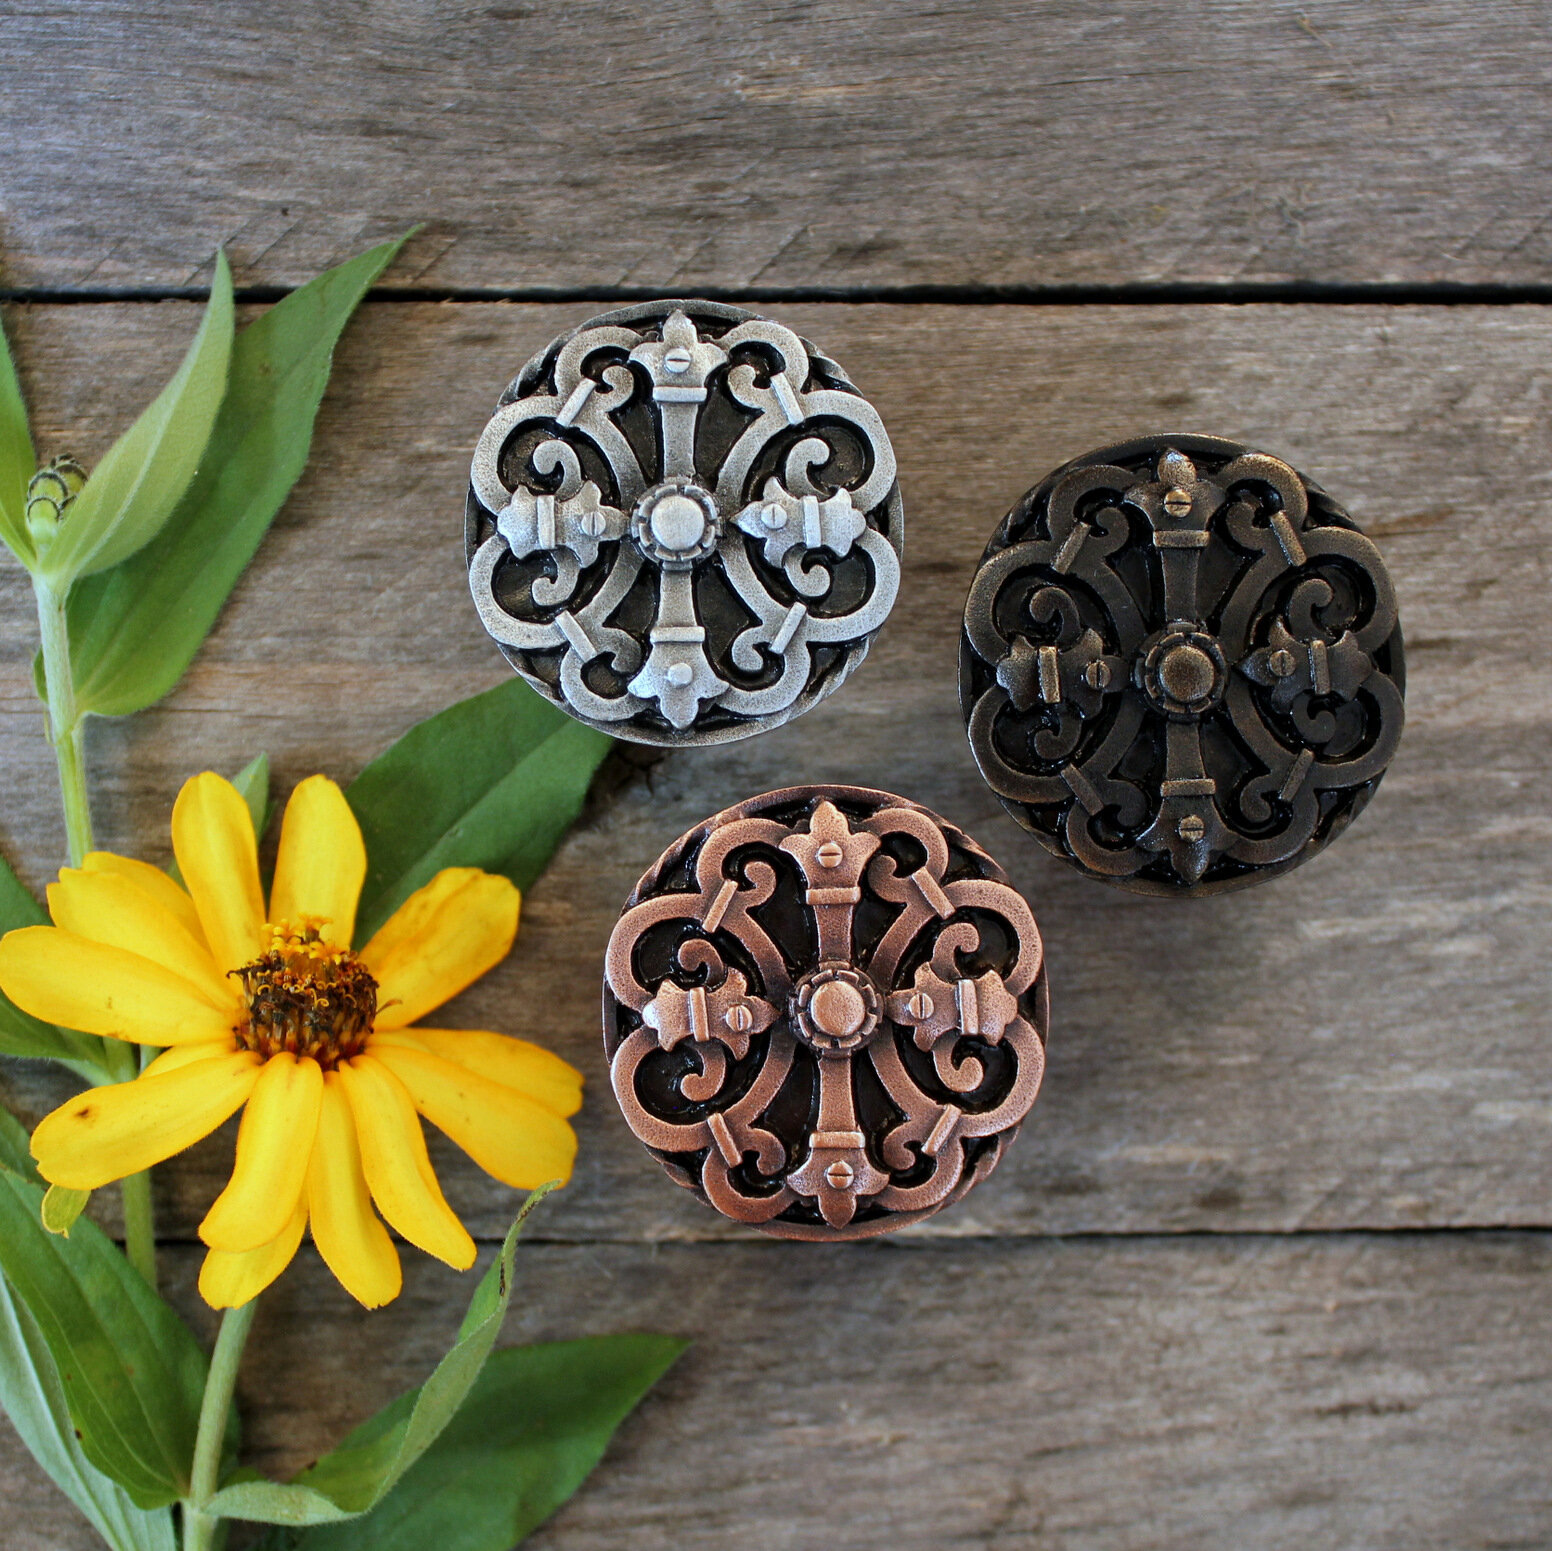 Rustic Elegance - Chateau Knobs NHK-176 in Antique Copper, Dark Brass and Antique Pewter